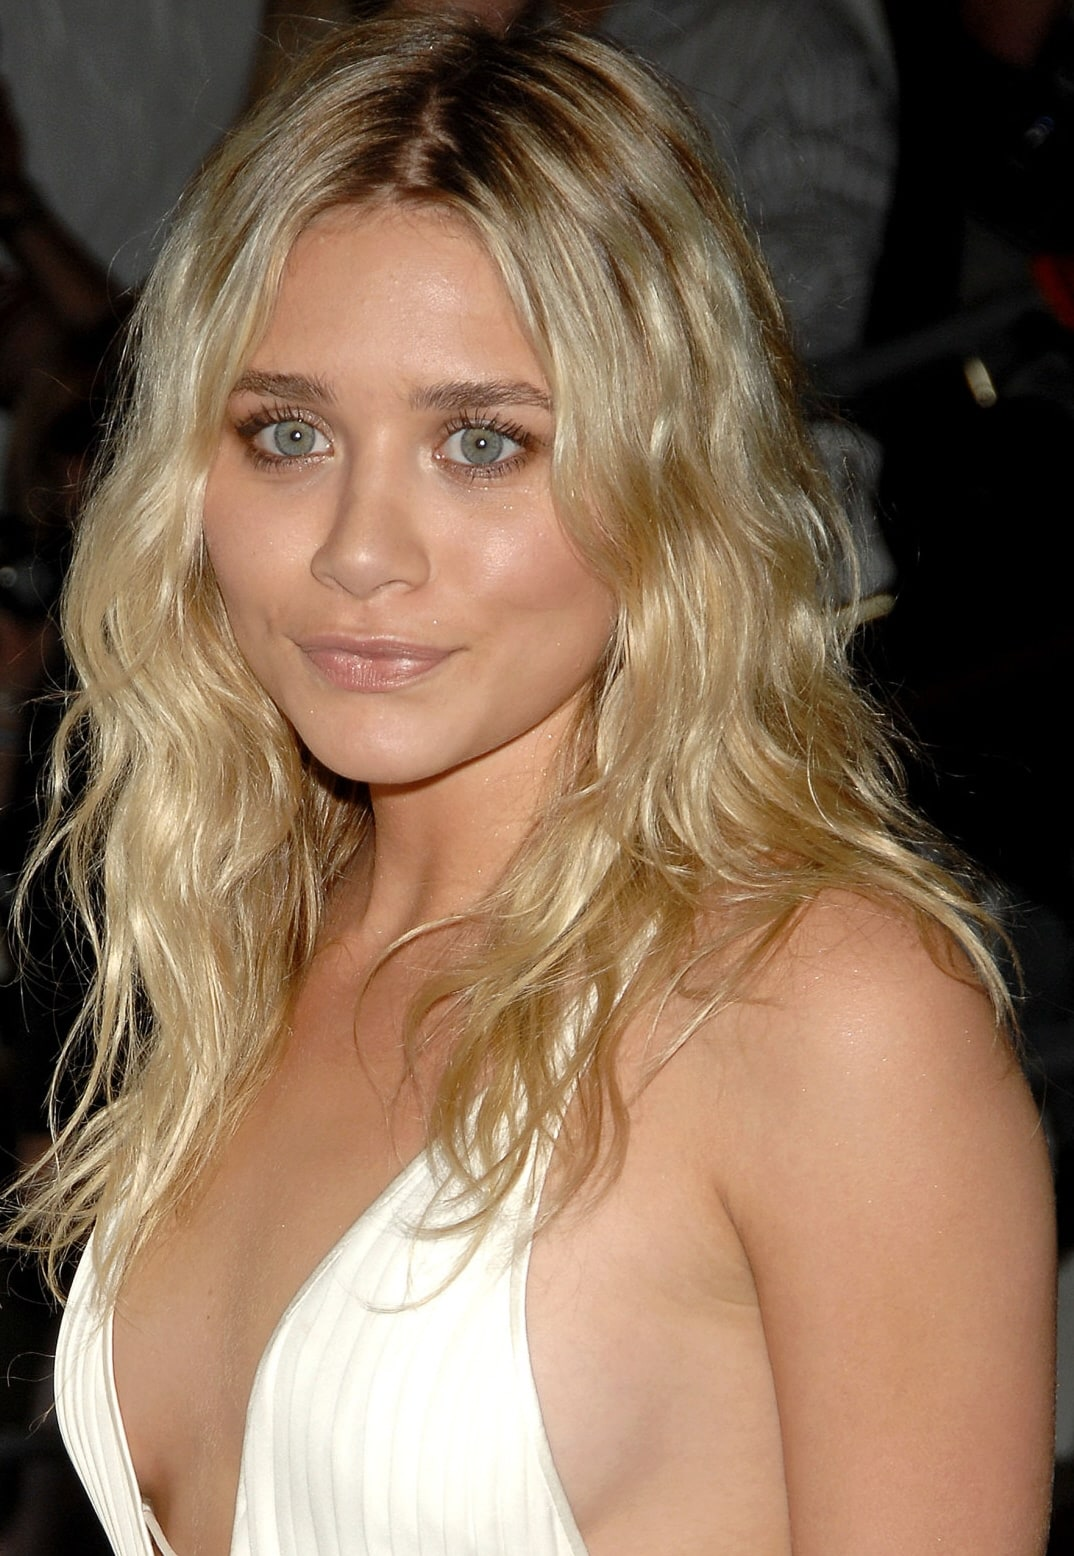 Picture Of Ashley Olsen-4653